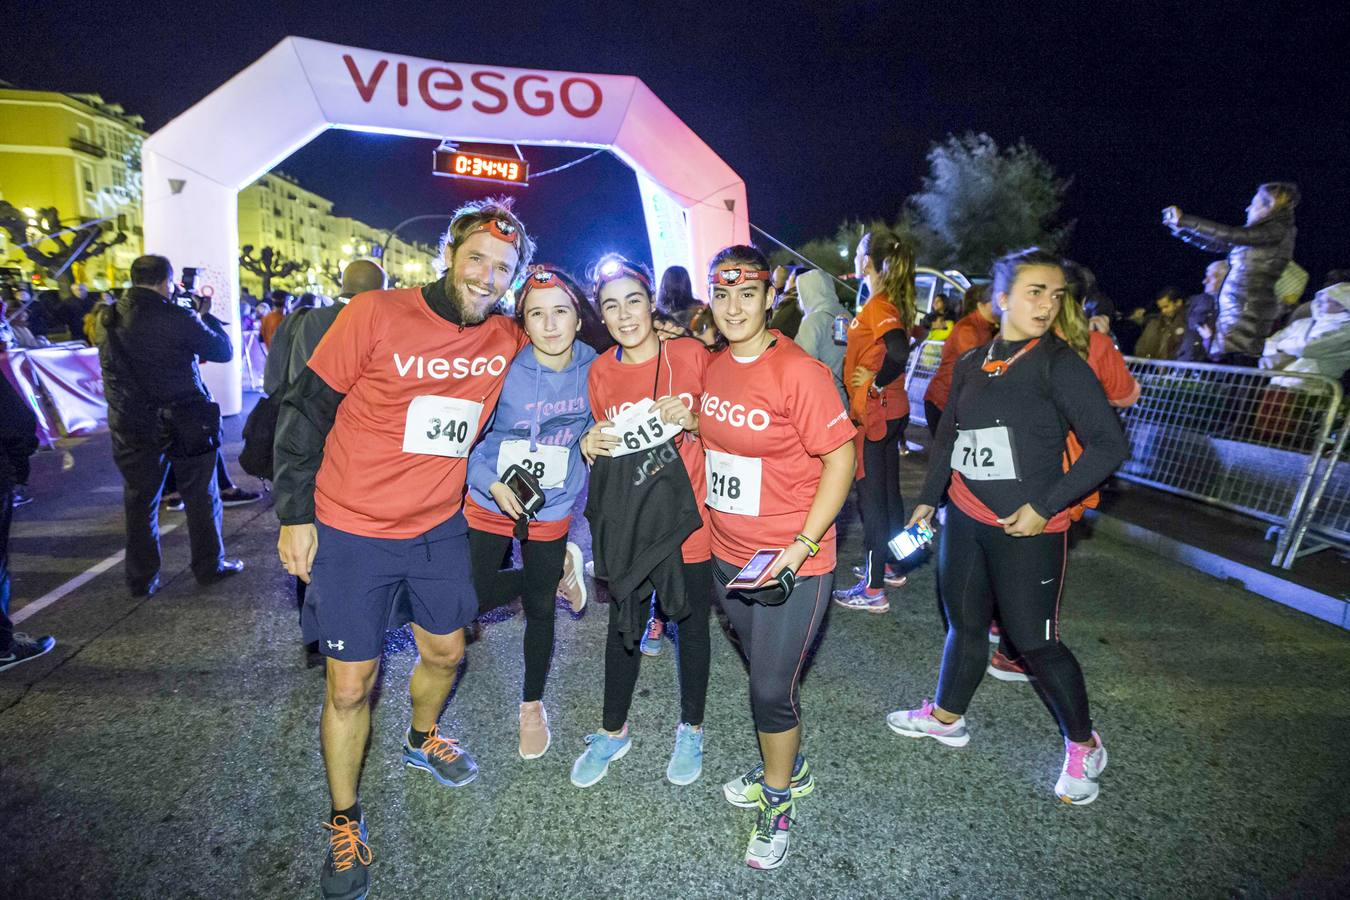 Viesgo Night Race